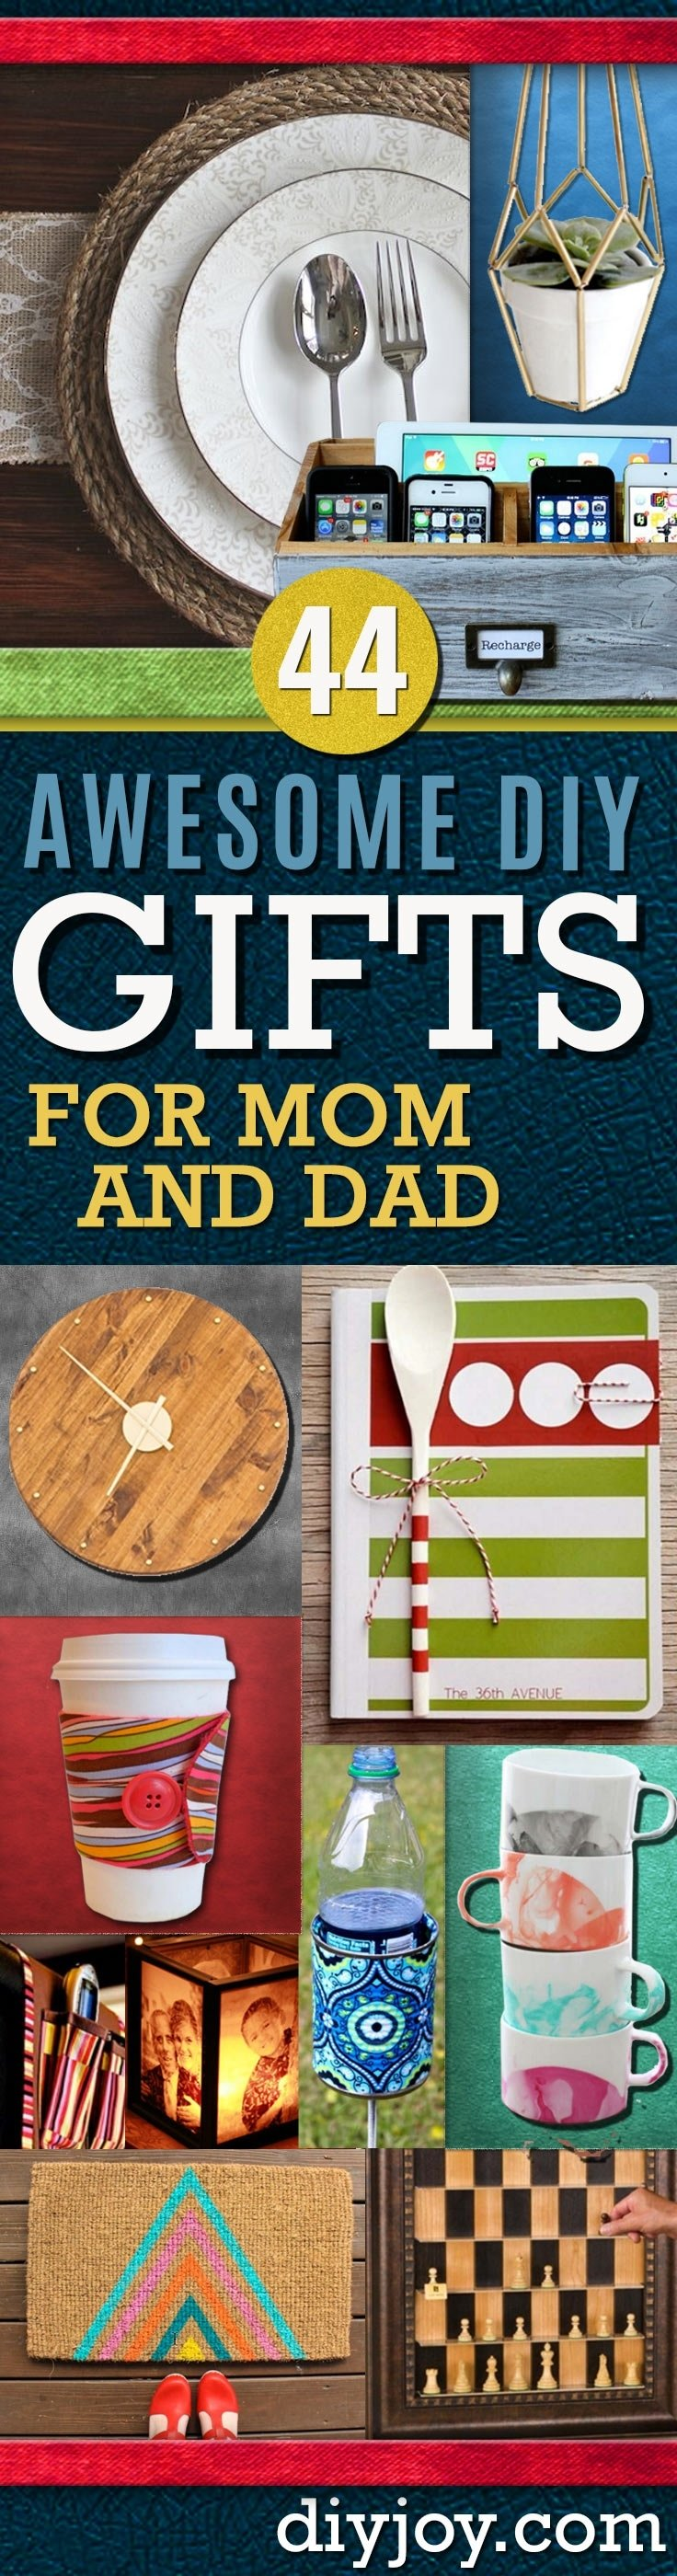 10 Lovable Best Gift Ideas For Dad awesome diy gift ideas mom and dad will love 33 2021